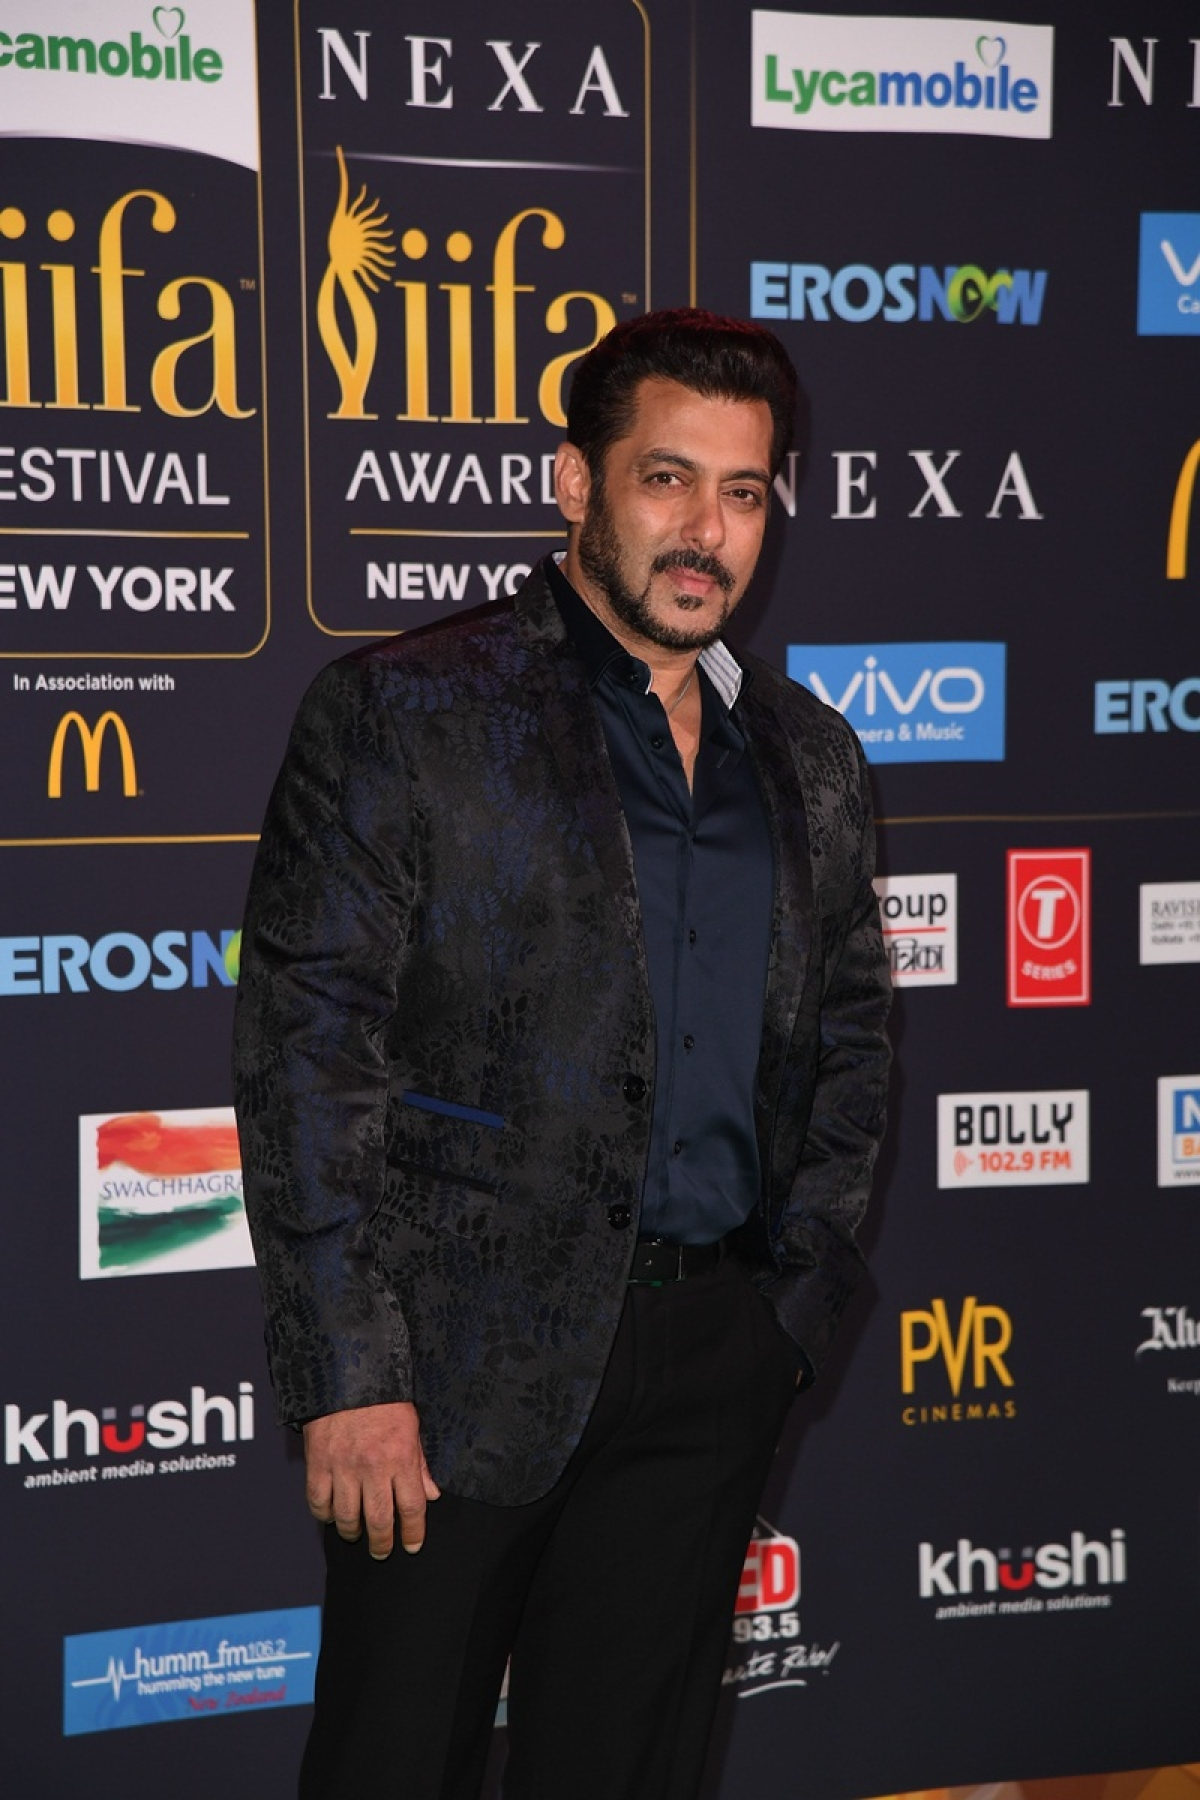 Bollywood actor Salman Khan arrives for the IIFA Awards July 15, 2017 at the MetLife Stadium in East Rutherford, New Jersey during the 18th International Indian Film Academy (IIFA) Festival. / AFP PHOTO / ANGELA WEISS